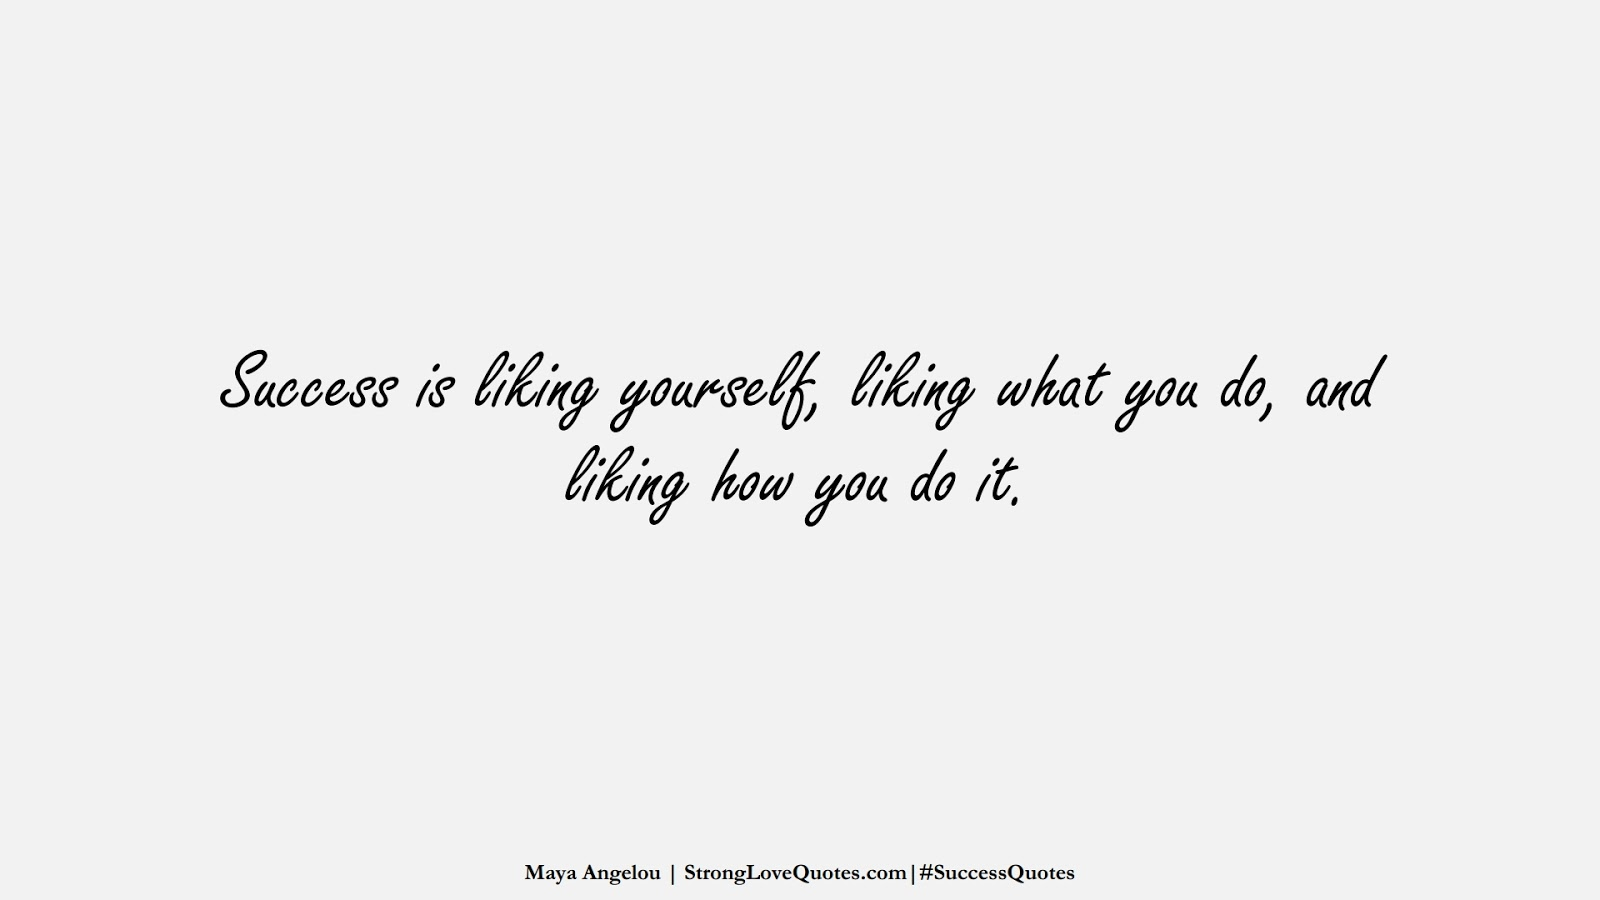 Success is liking yourself, liking what you do, and liking how you do it. (Maya Angelou);  #SuccessQuotes